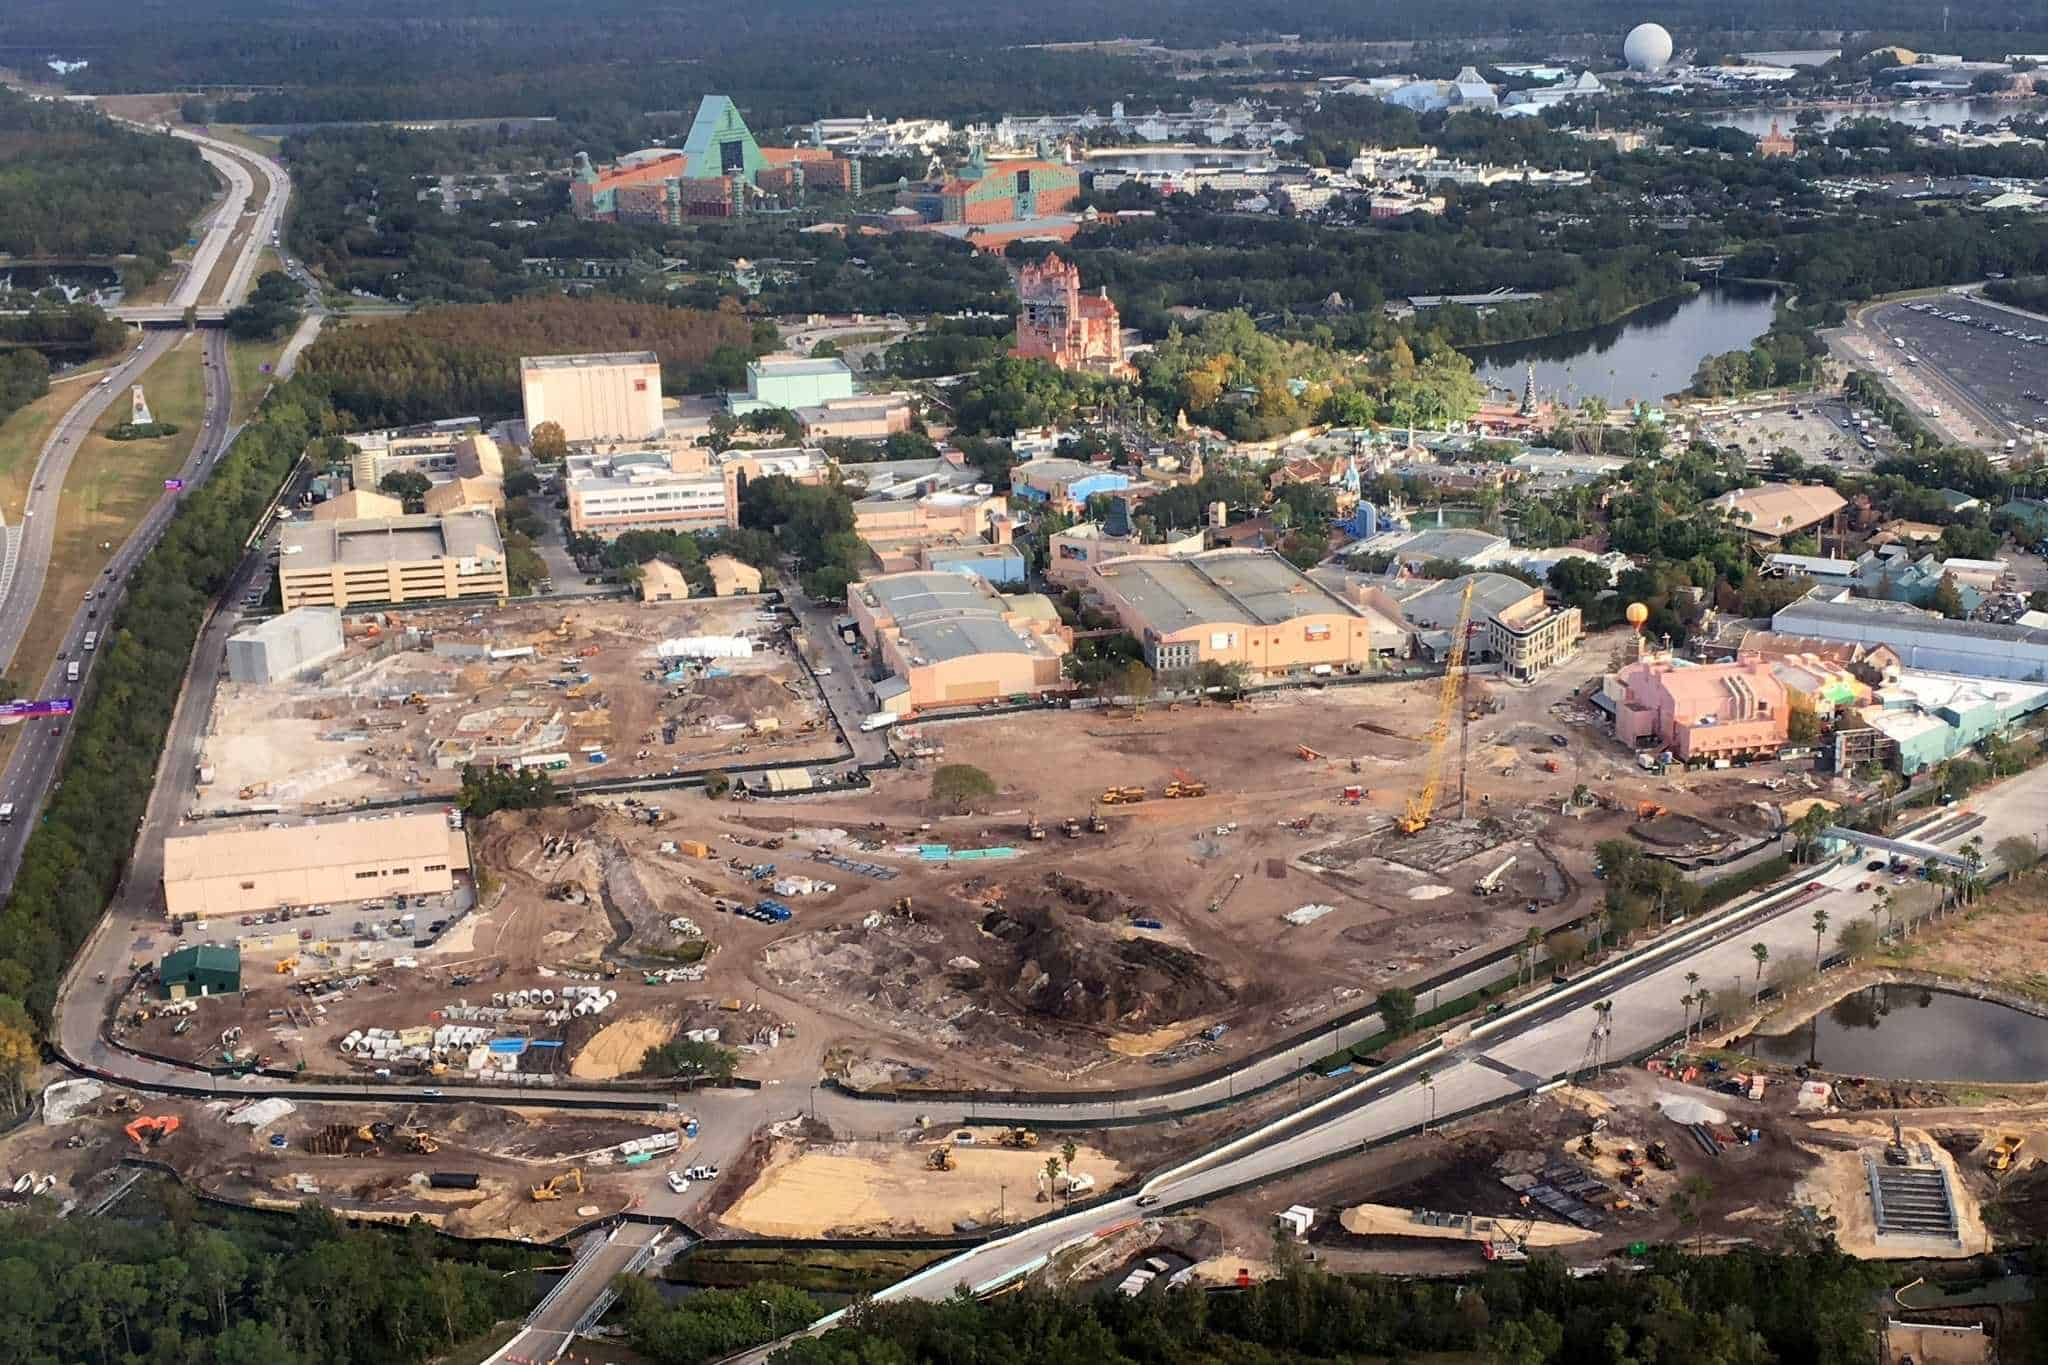 Aerial View of Construction at Hollywood Studios, Latest Progress on Toy Story & Star Wars Lands